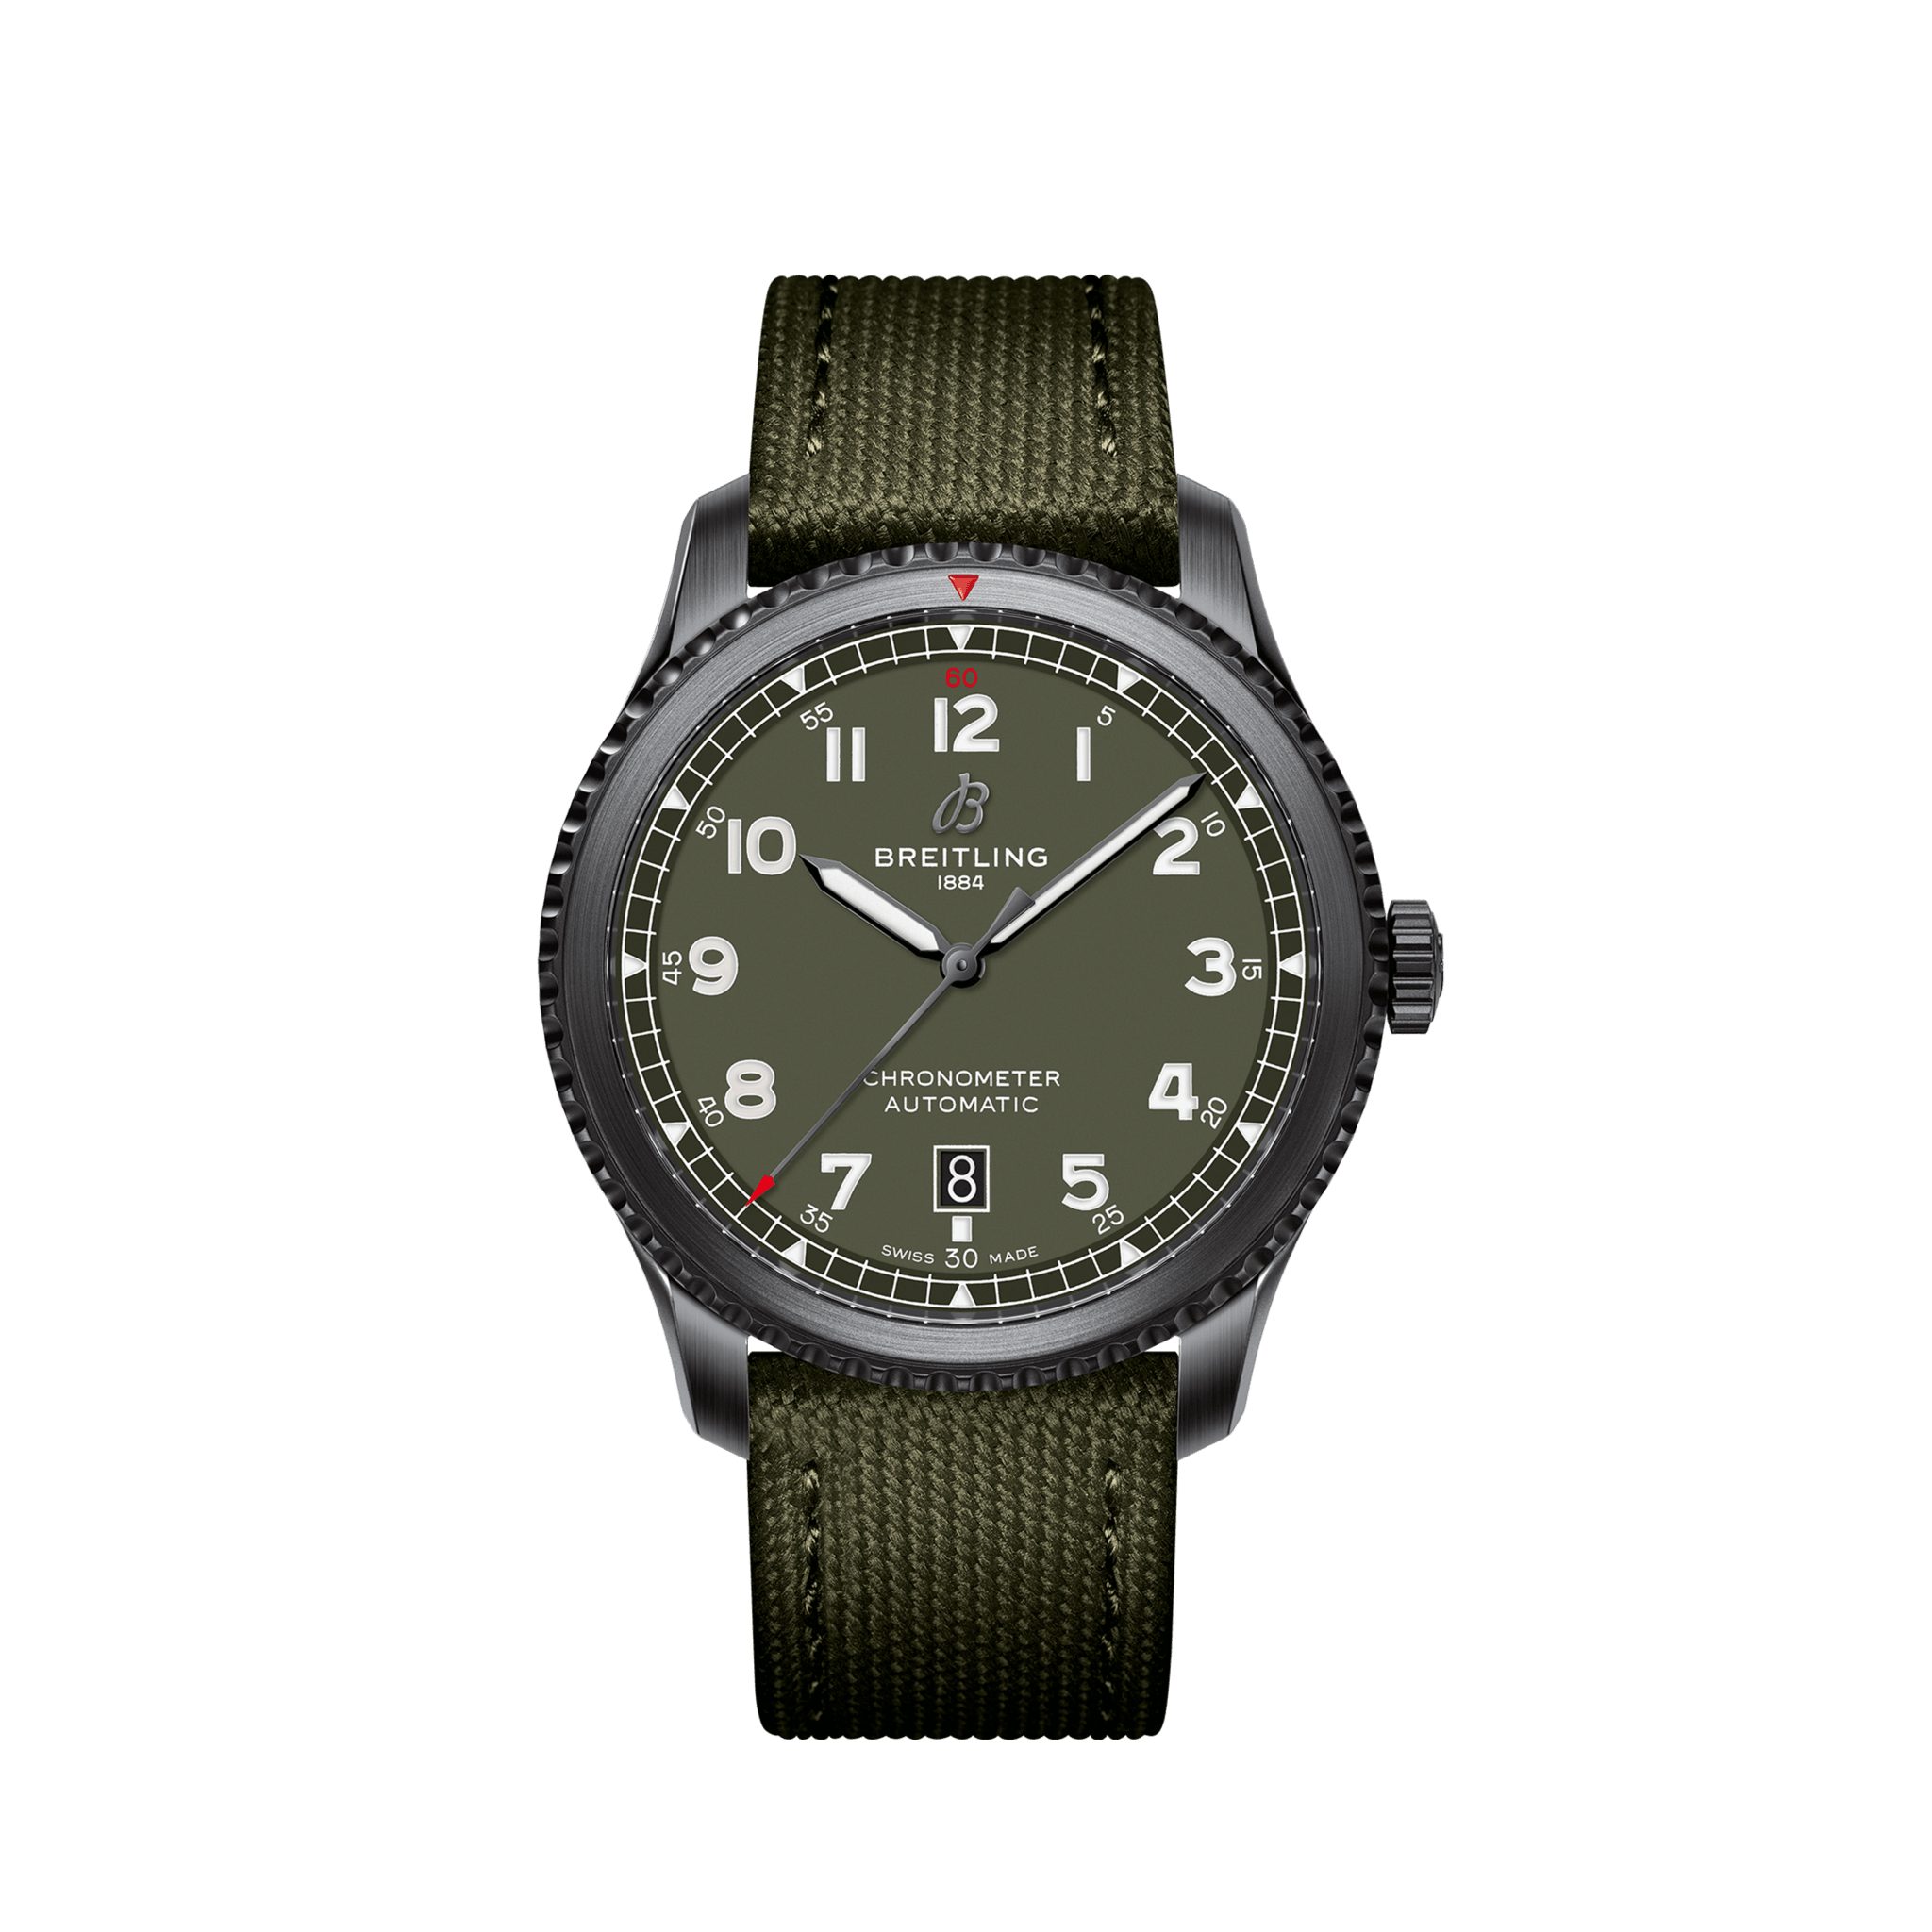 AVIATOR 8, AVIATION WATCHES